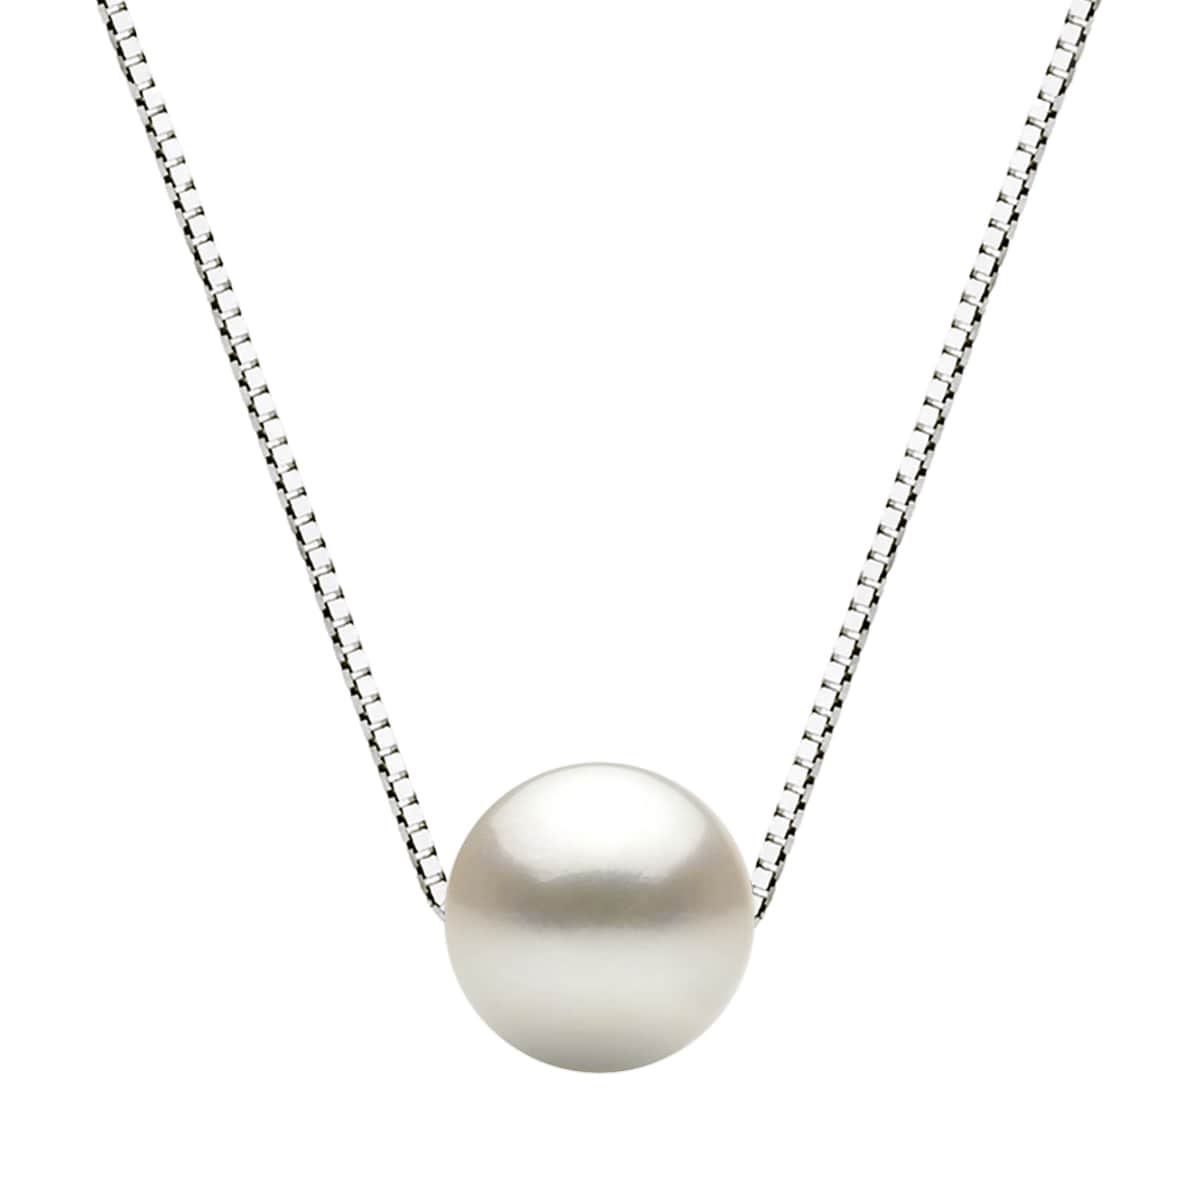 Davonna sterling silver box chain with 11 12mm white round davonna sterling silver box chain with 11 12mm white round freshwater pearl pendant necklace 18 free shipping today overstock 18933658 mozeypictures Gallery